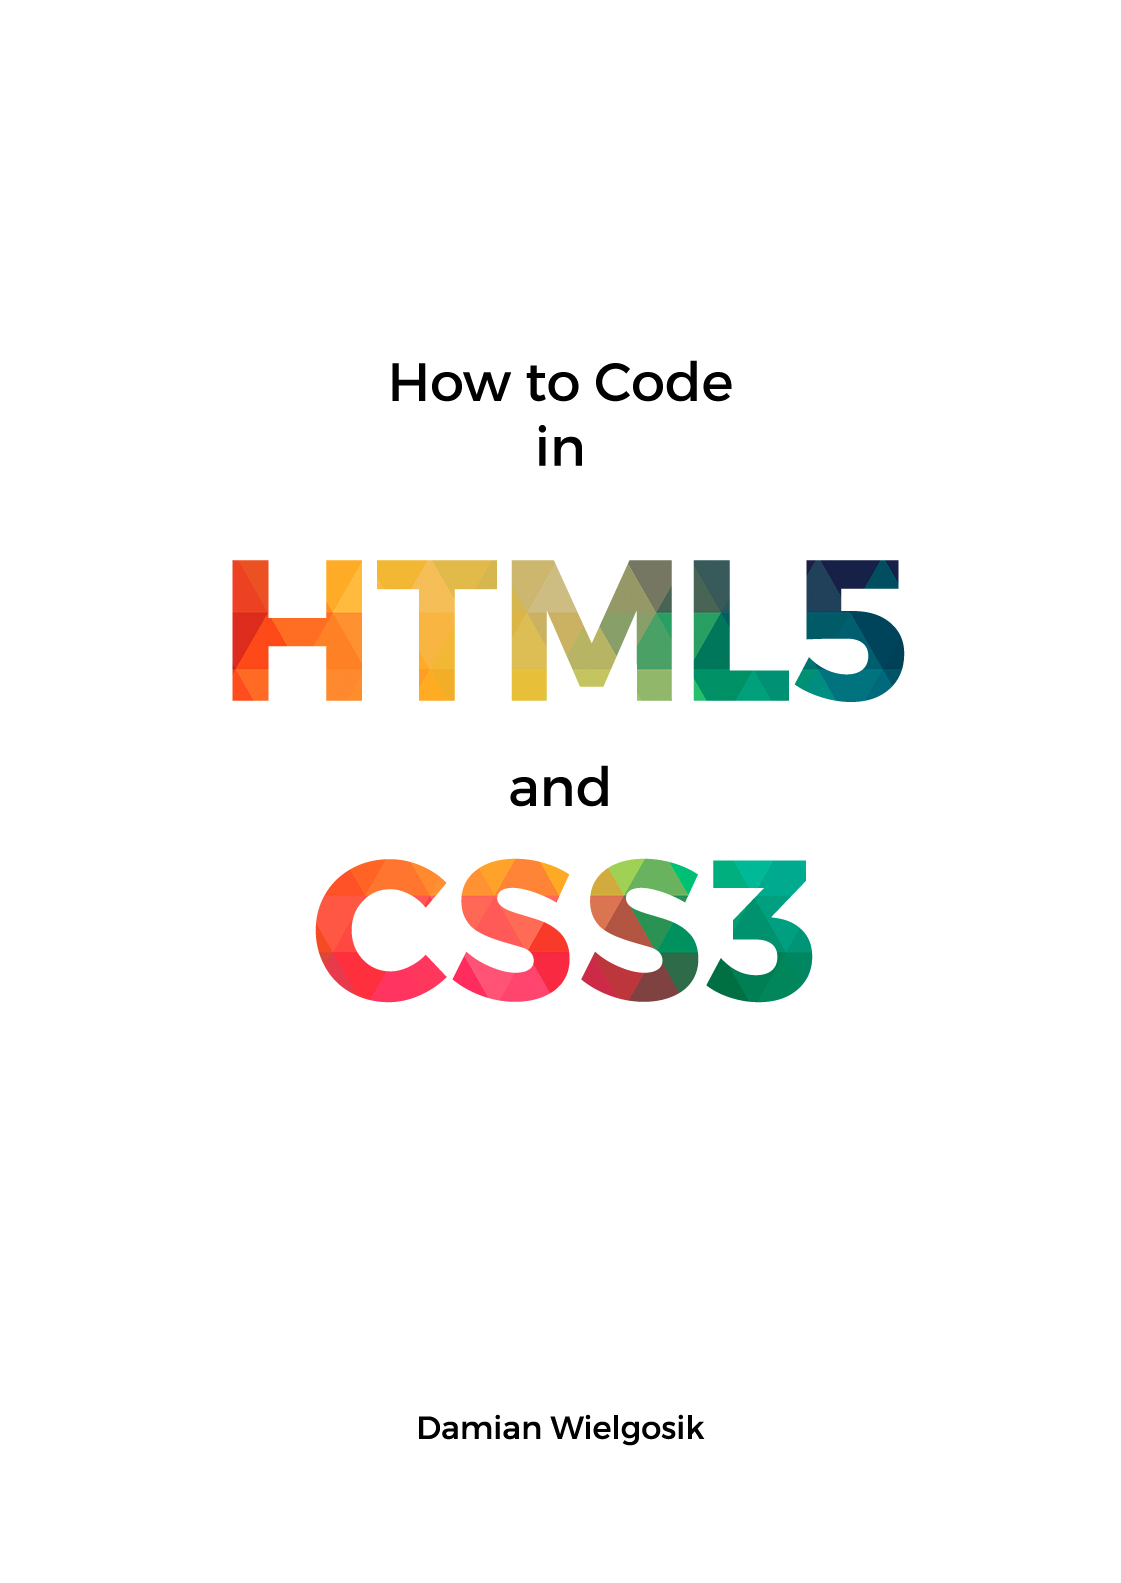 How to learn html5 and css3